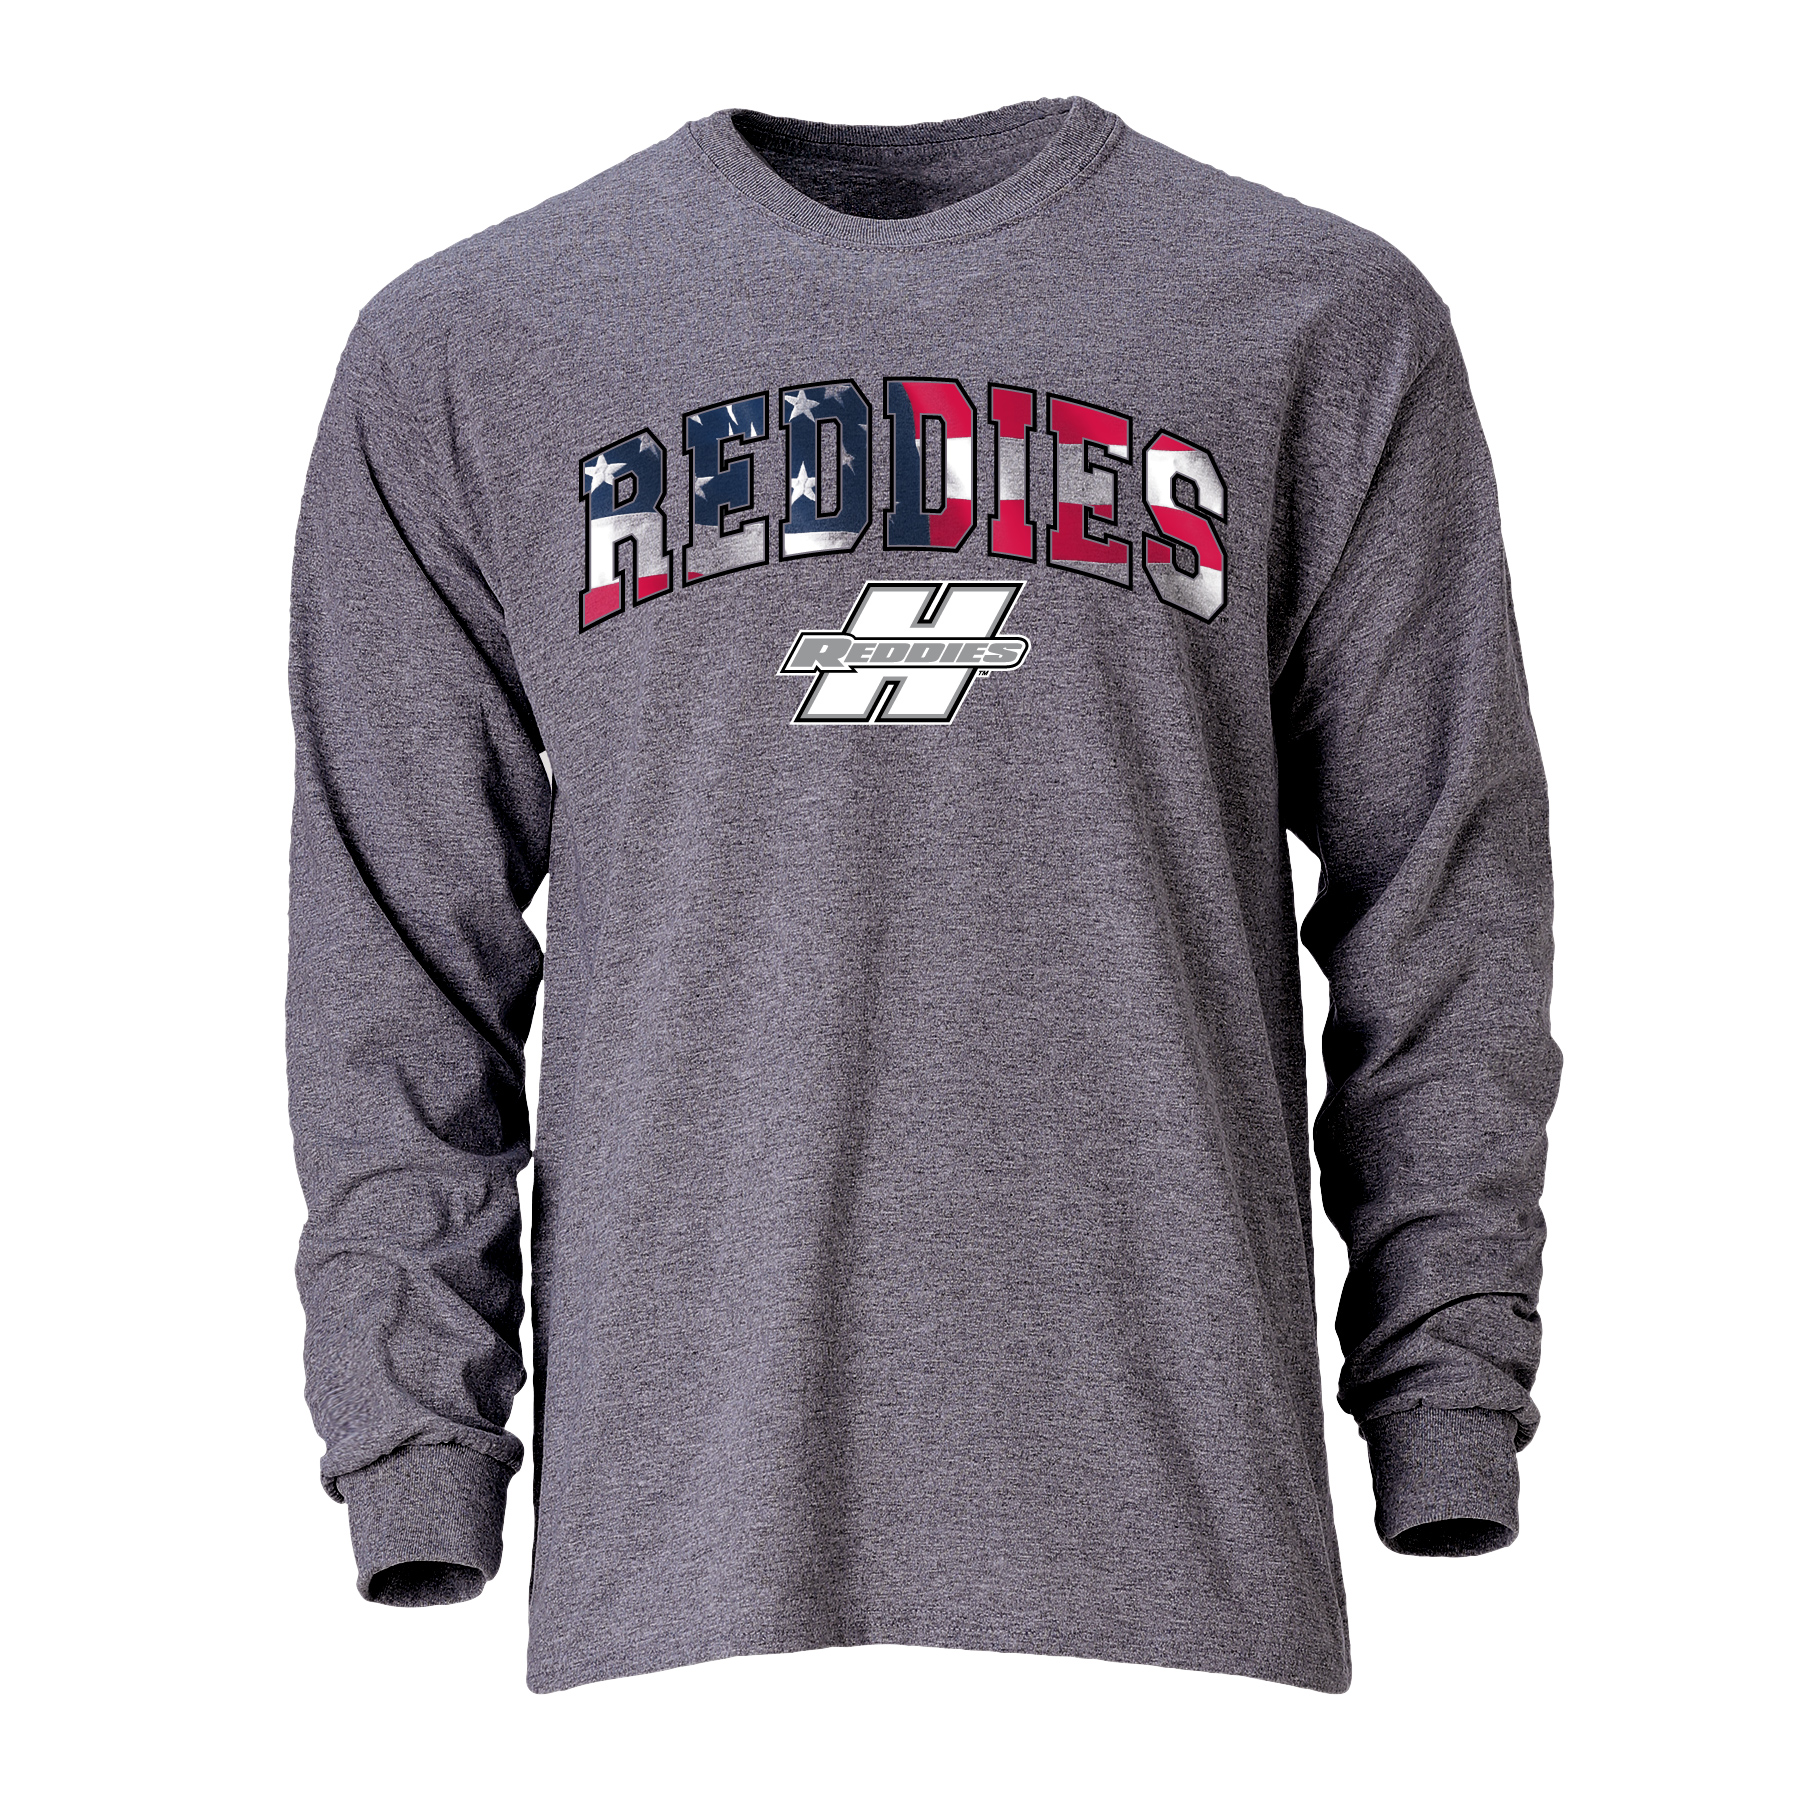 Reddies Arch of America Long Sleeve T-Shirt